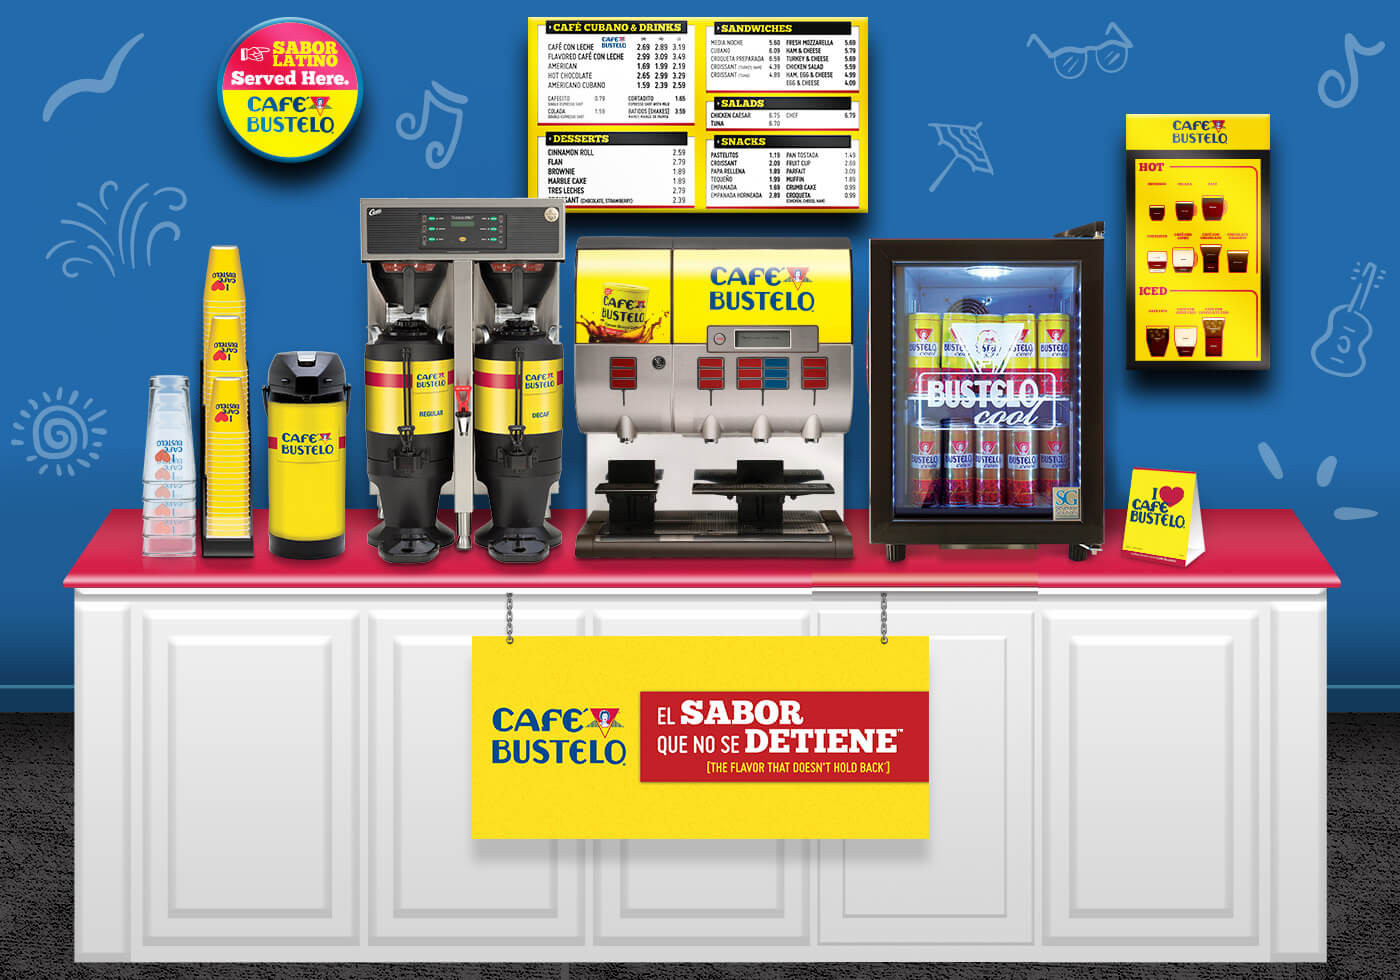 Example of a coffee bar feature Cafe Bustelo products and equipment